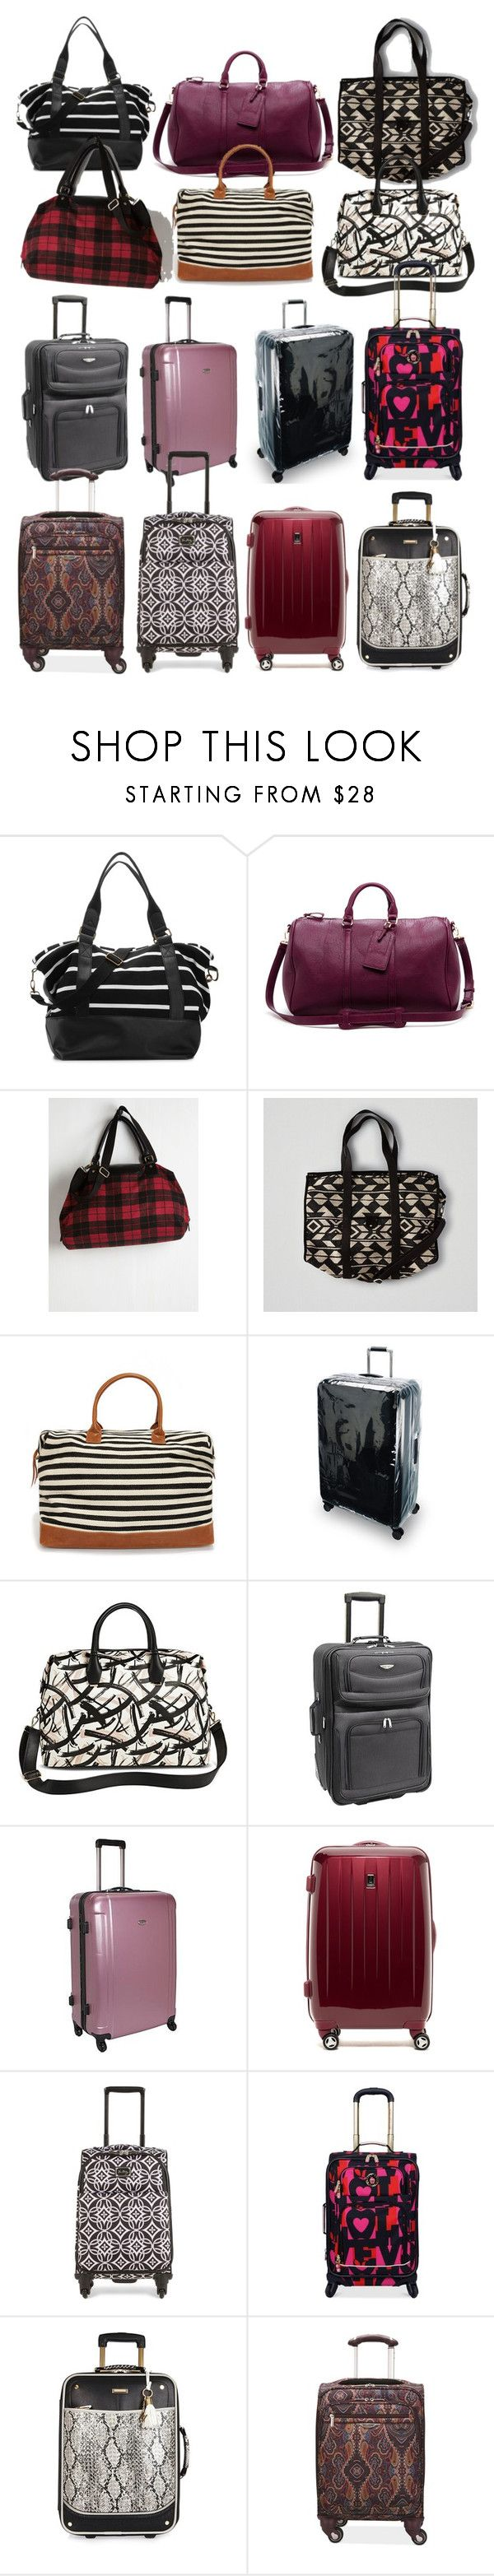 """""""Aria Montgomery inspired suitcases & weekender bags"""" by liarsstyle ❤ liked on Polyvore featuring Madden Girl, Sole Society, American Eagle Outfitters, LULUS, Ted Baker, DV, Traveler's Choice, Travelpro, Vera Bradley and River Island"""